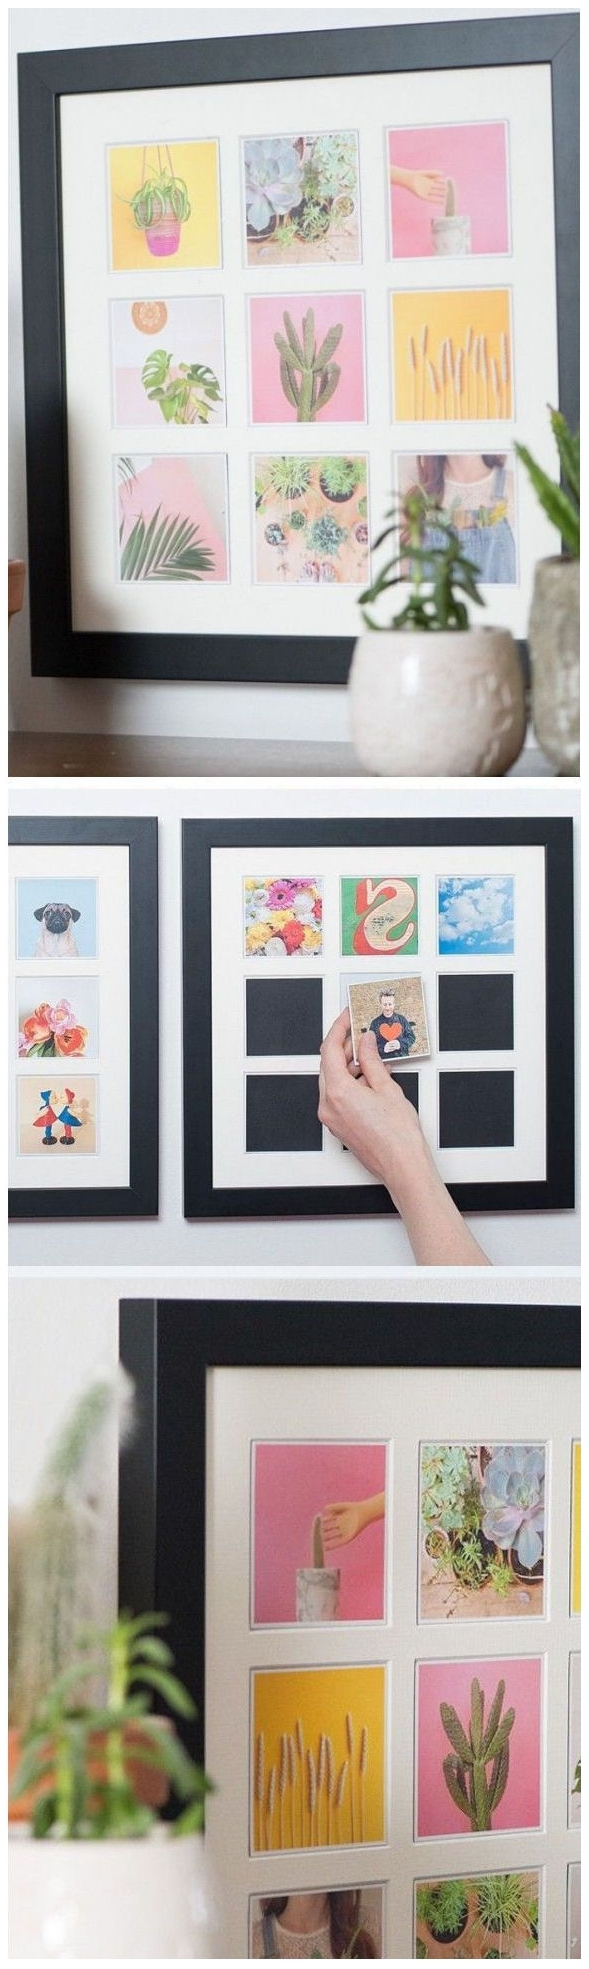 Instagram Wall Art For Most Recent Magnetic Picture Frame // Making It Easy To Change Your Decor (View 10 of 20)